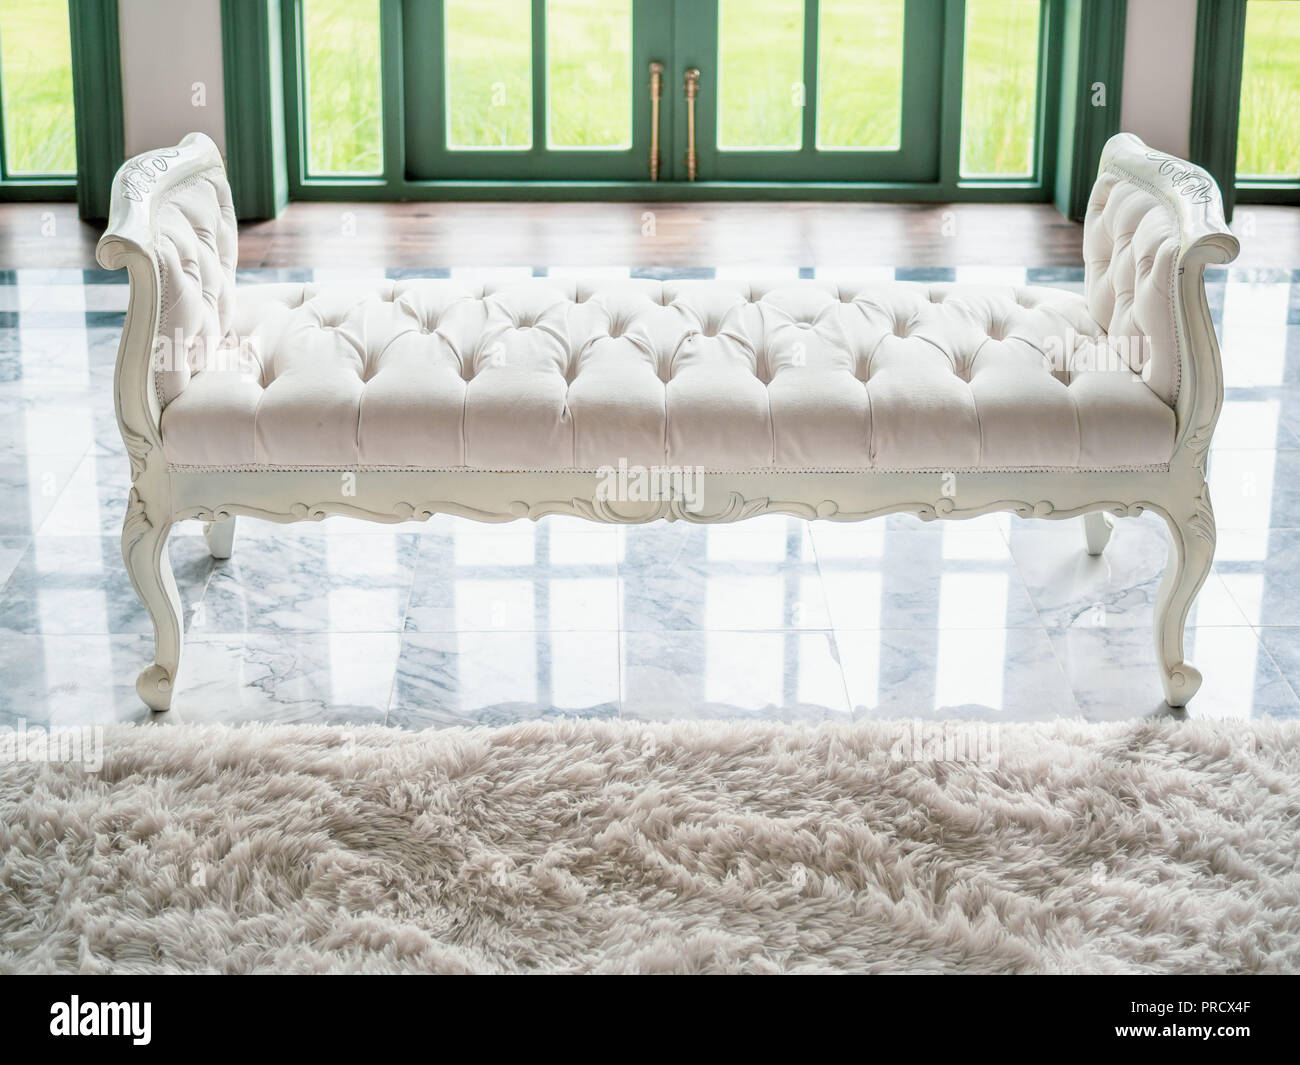 white tufted stock photos white tufted stock images alamy 13817 | classic vintage white tufted bench or bedroom bench on marble floor with white soft fur carpet in contemporary house near green door prcx4f